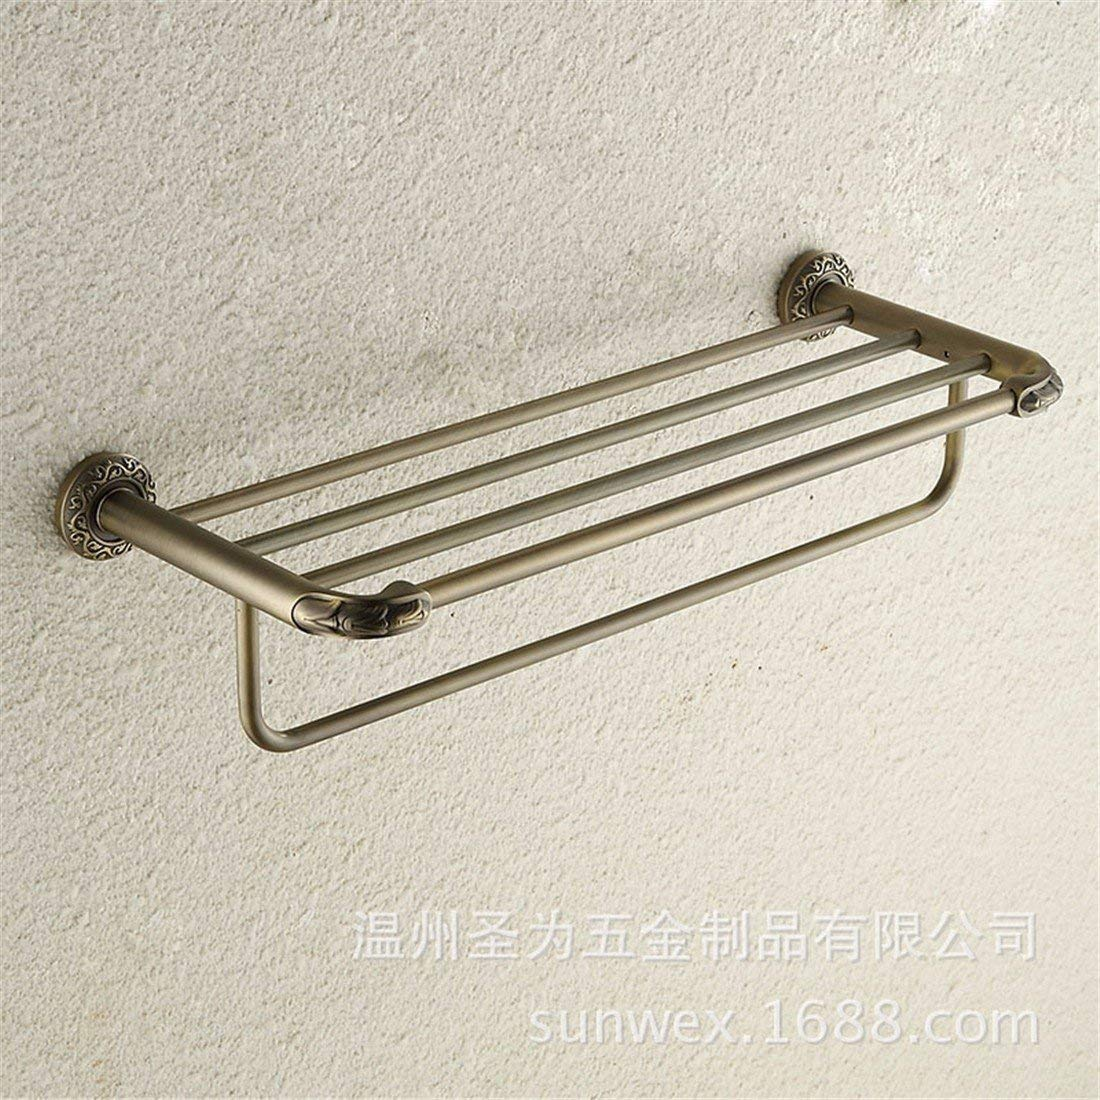 LAONA European style antique bronze carving Zinc alloy bathroom accessories, towel racks, towel bars,Towel rack